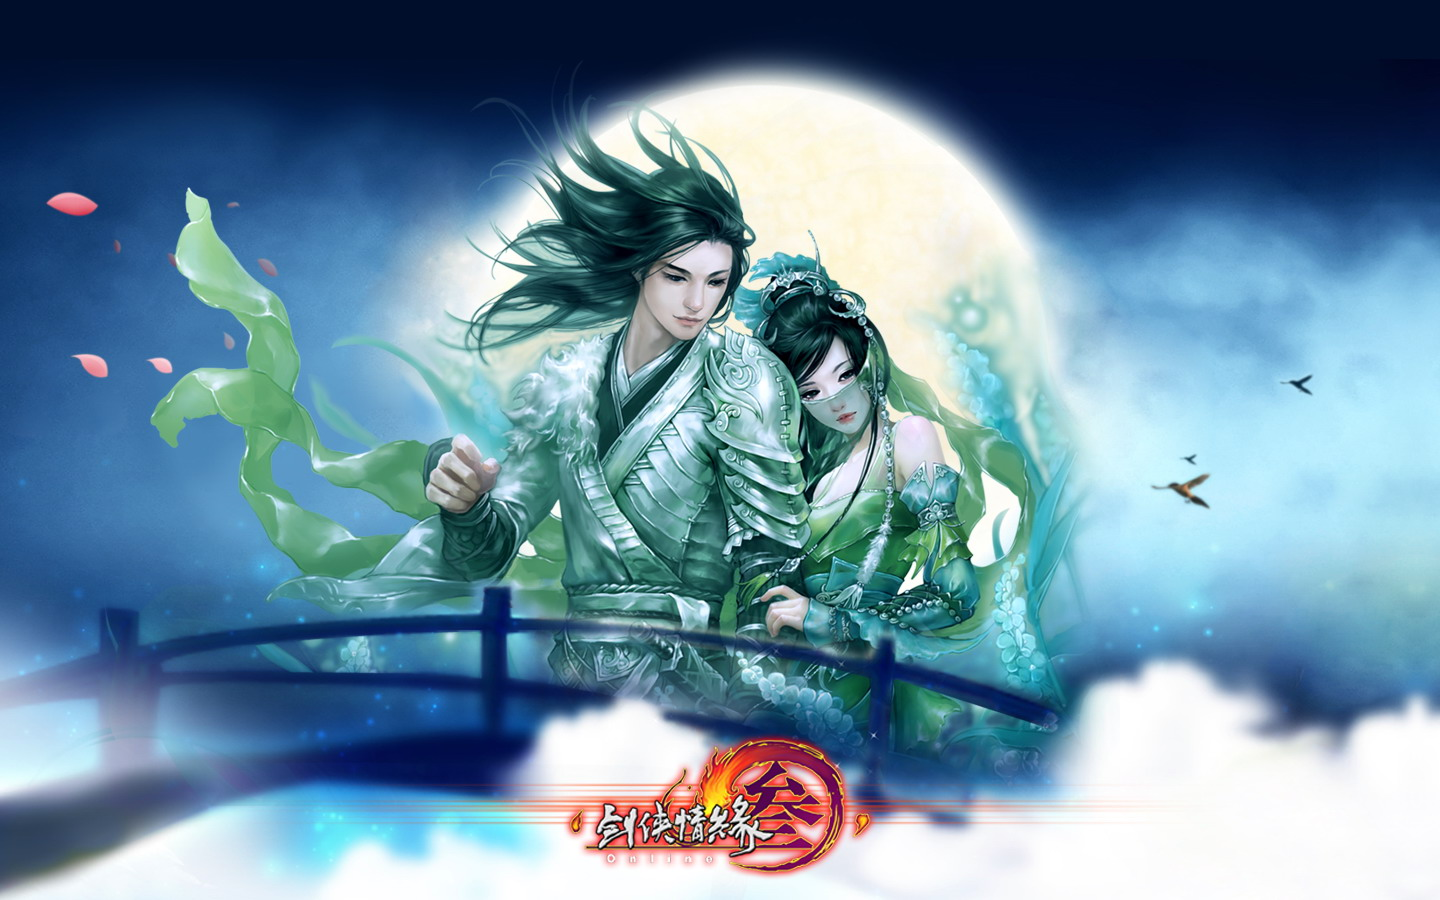 D martial arts online game wallpaper of JX 30229